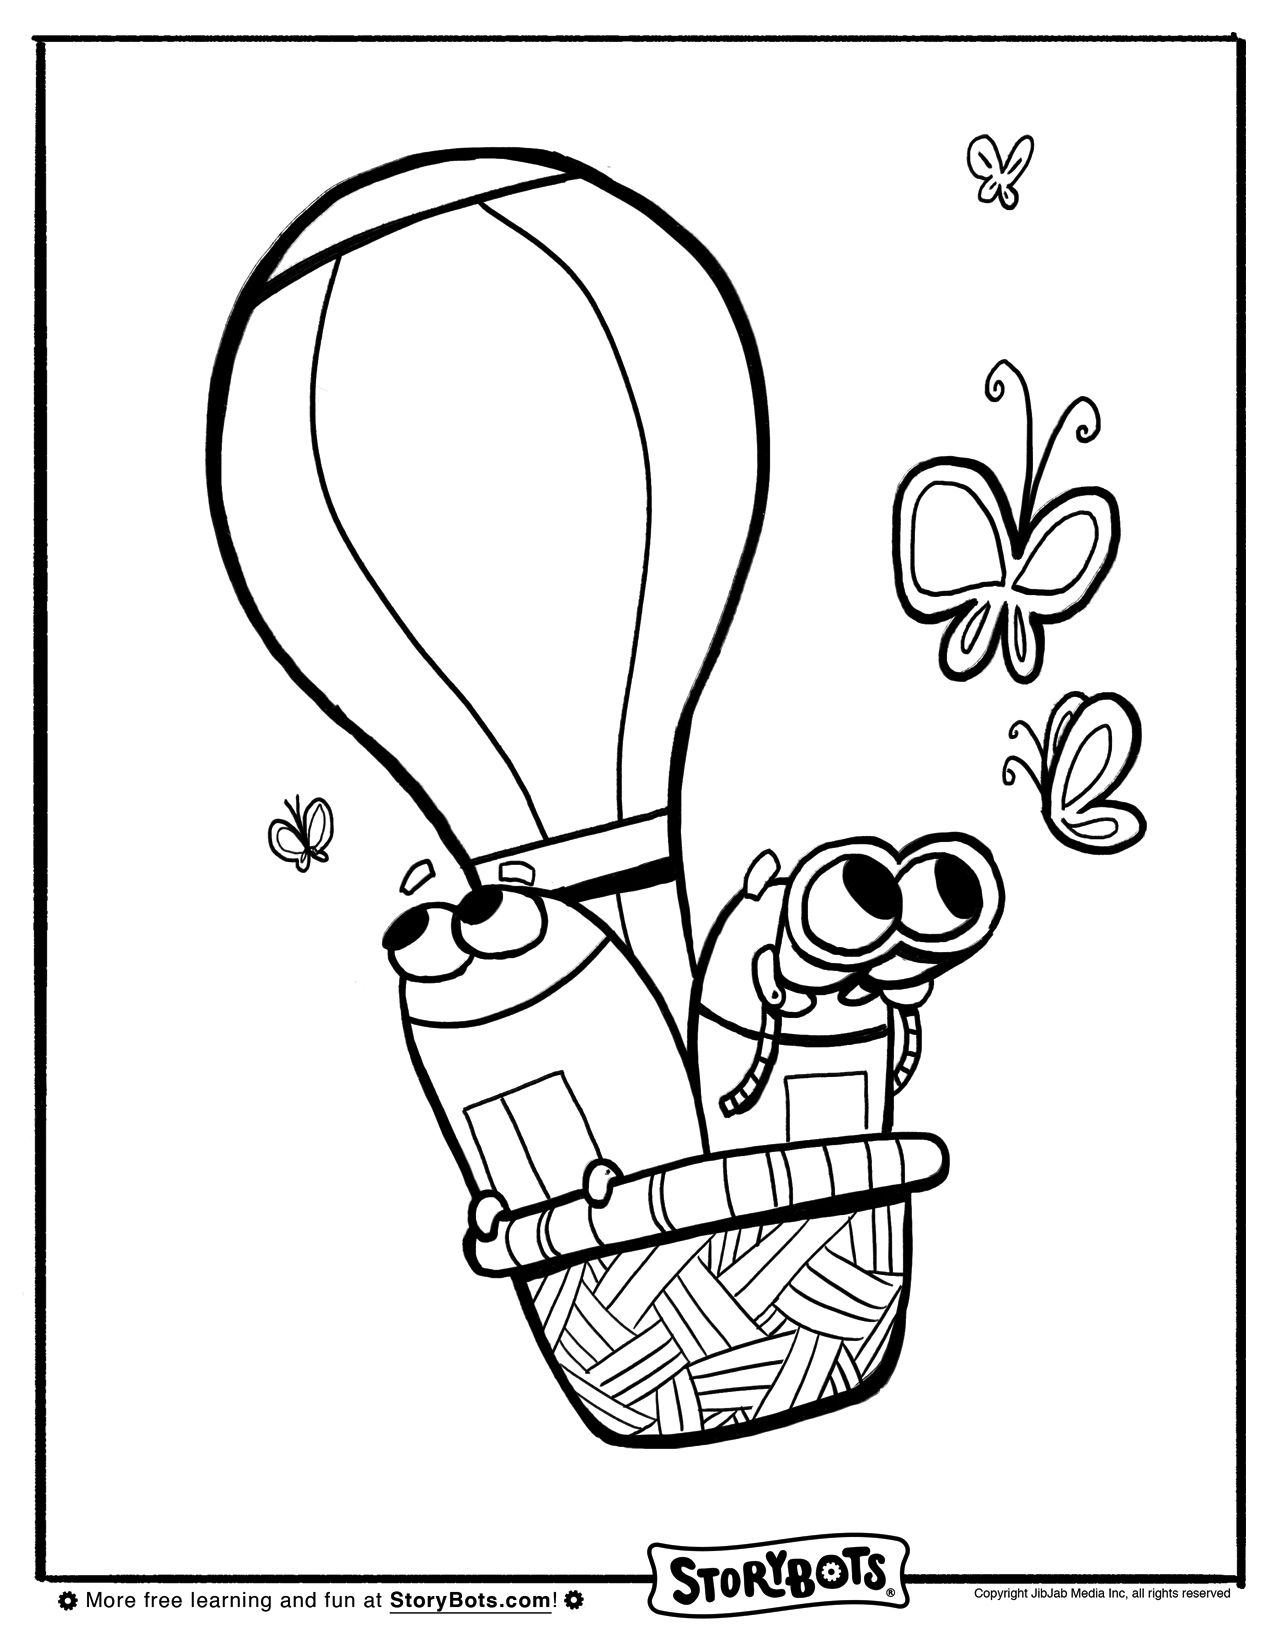 Hot Air Balloon Storybots Coloring Page